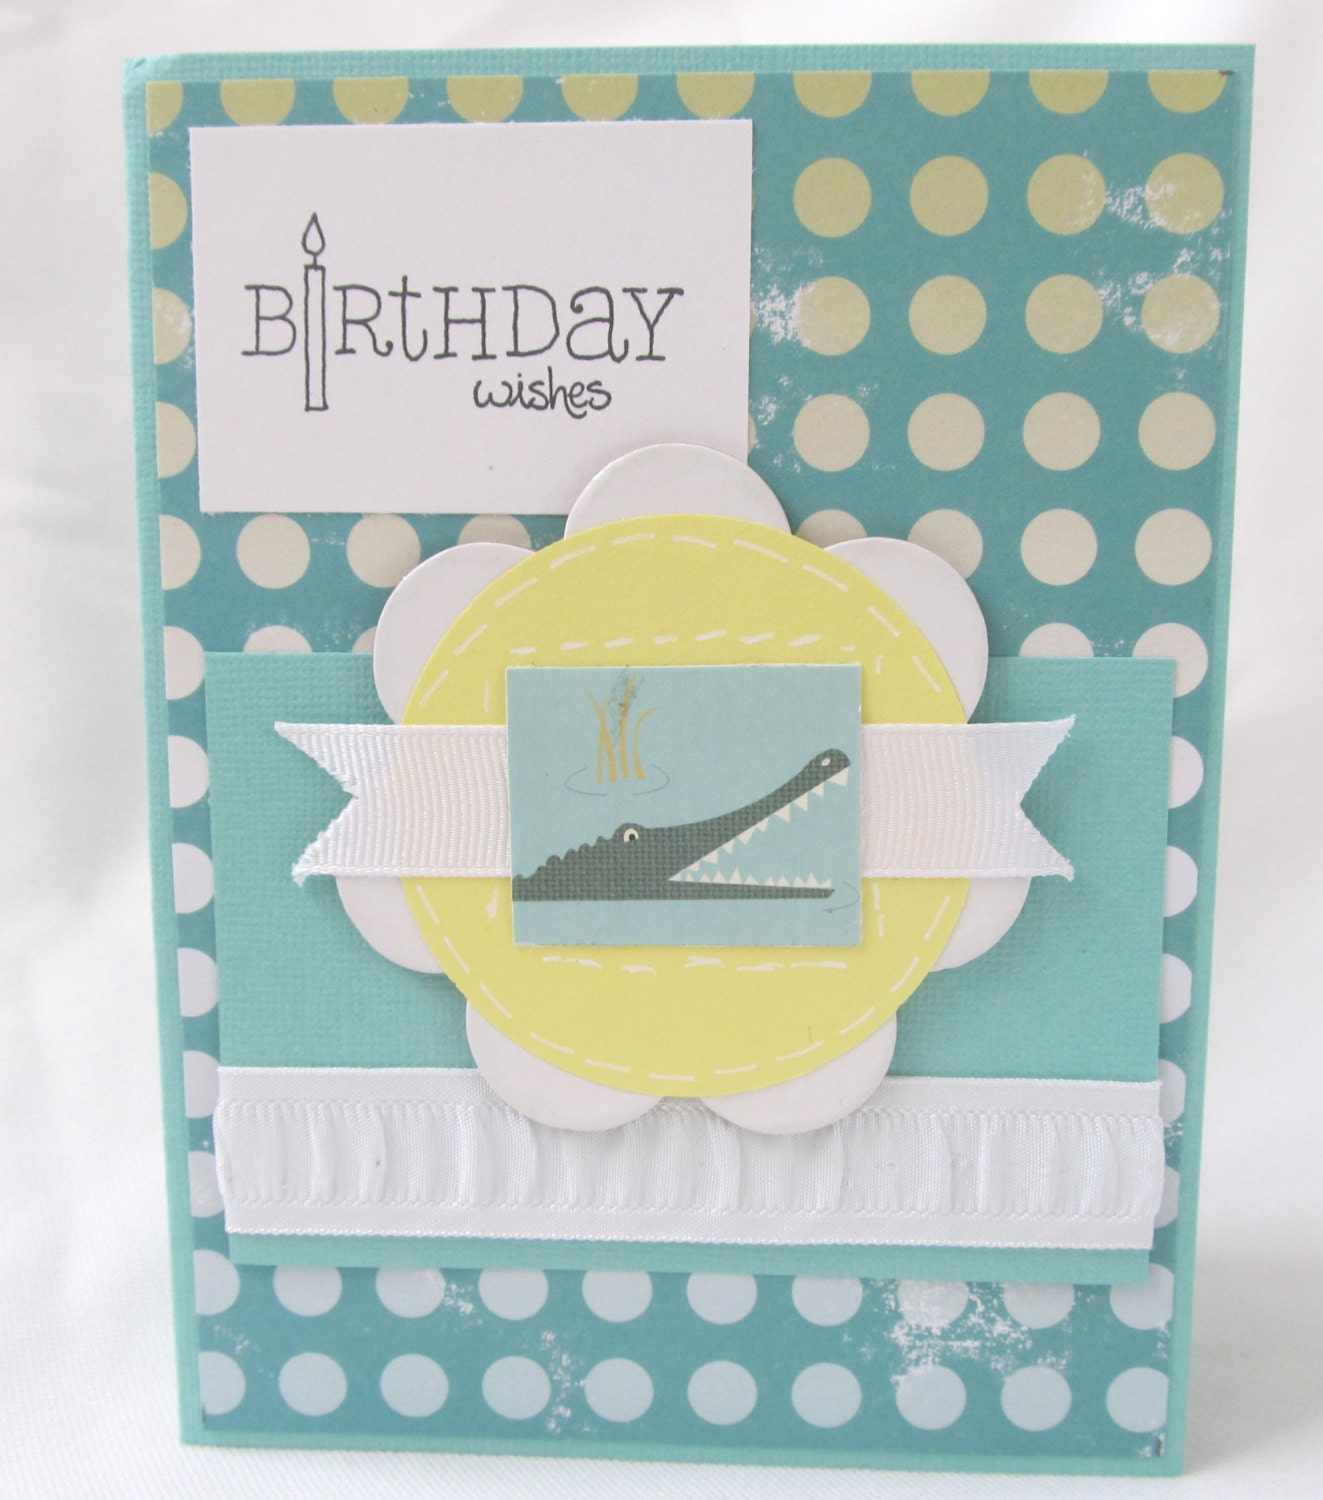 Handcrafted Card - Birrthday Card - Child's Birthday Card - Happy Birthday - Alligator - Turquoise and Yellow - Blank Card - Hand Stamped - PrettyByrdDesigns